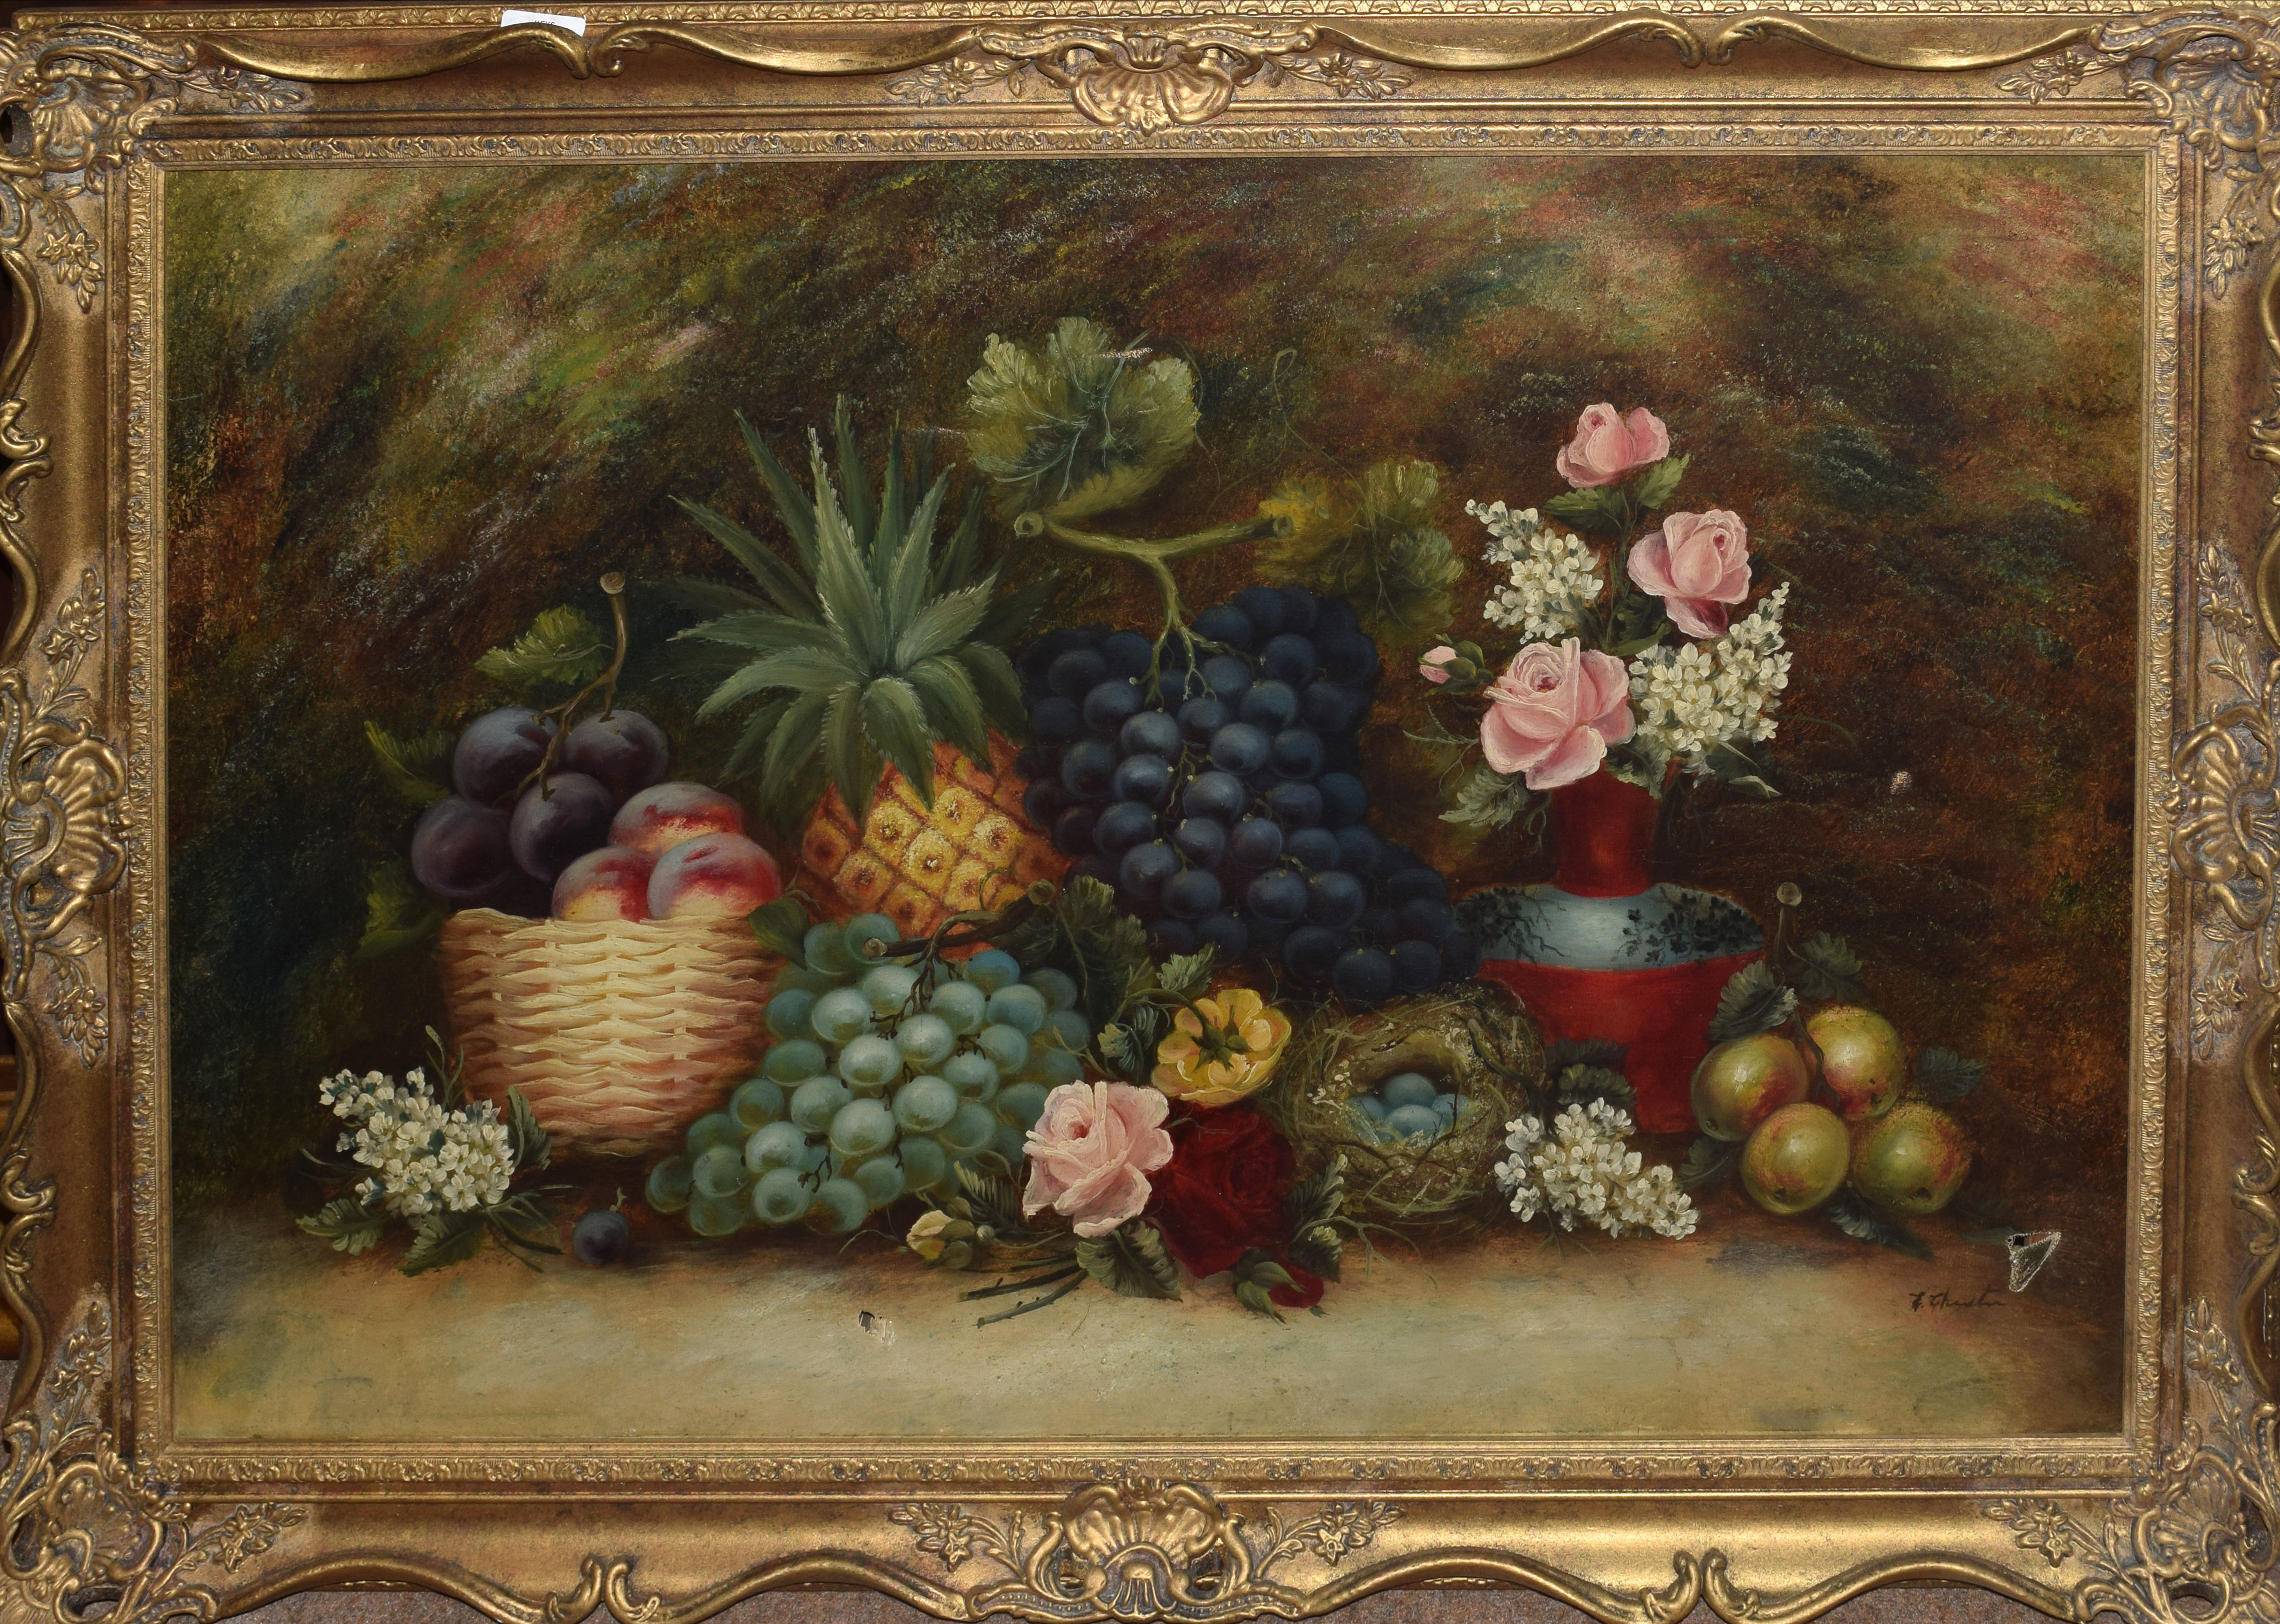 E Chester, Still Life Study, oil on canvas, signed lower right, 59 x 89cm